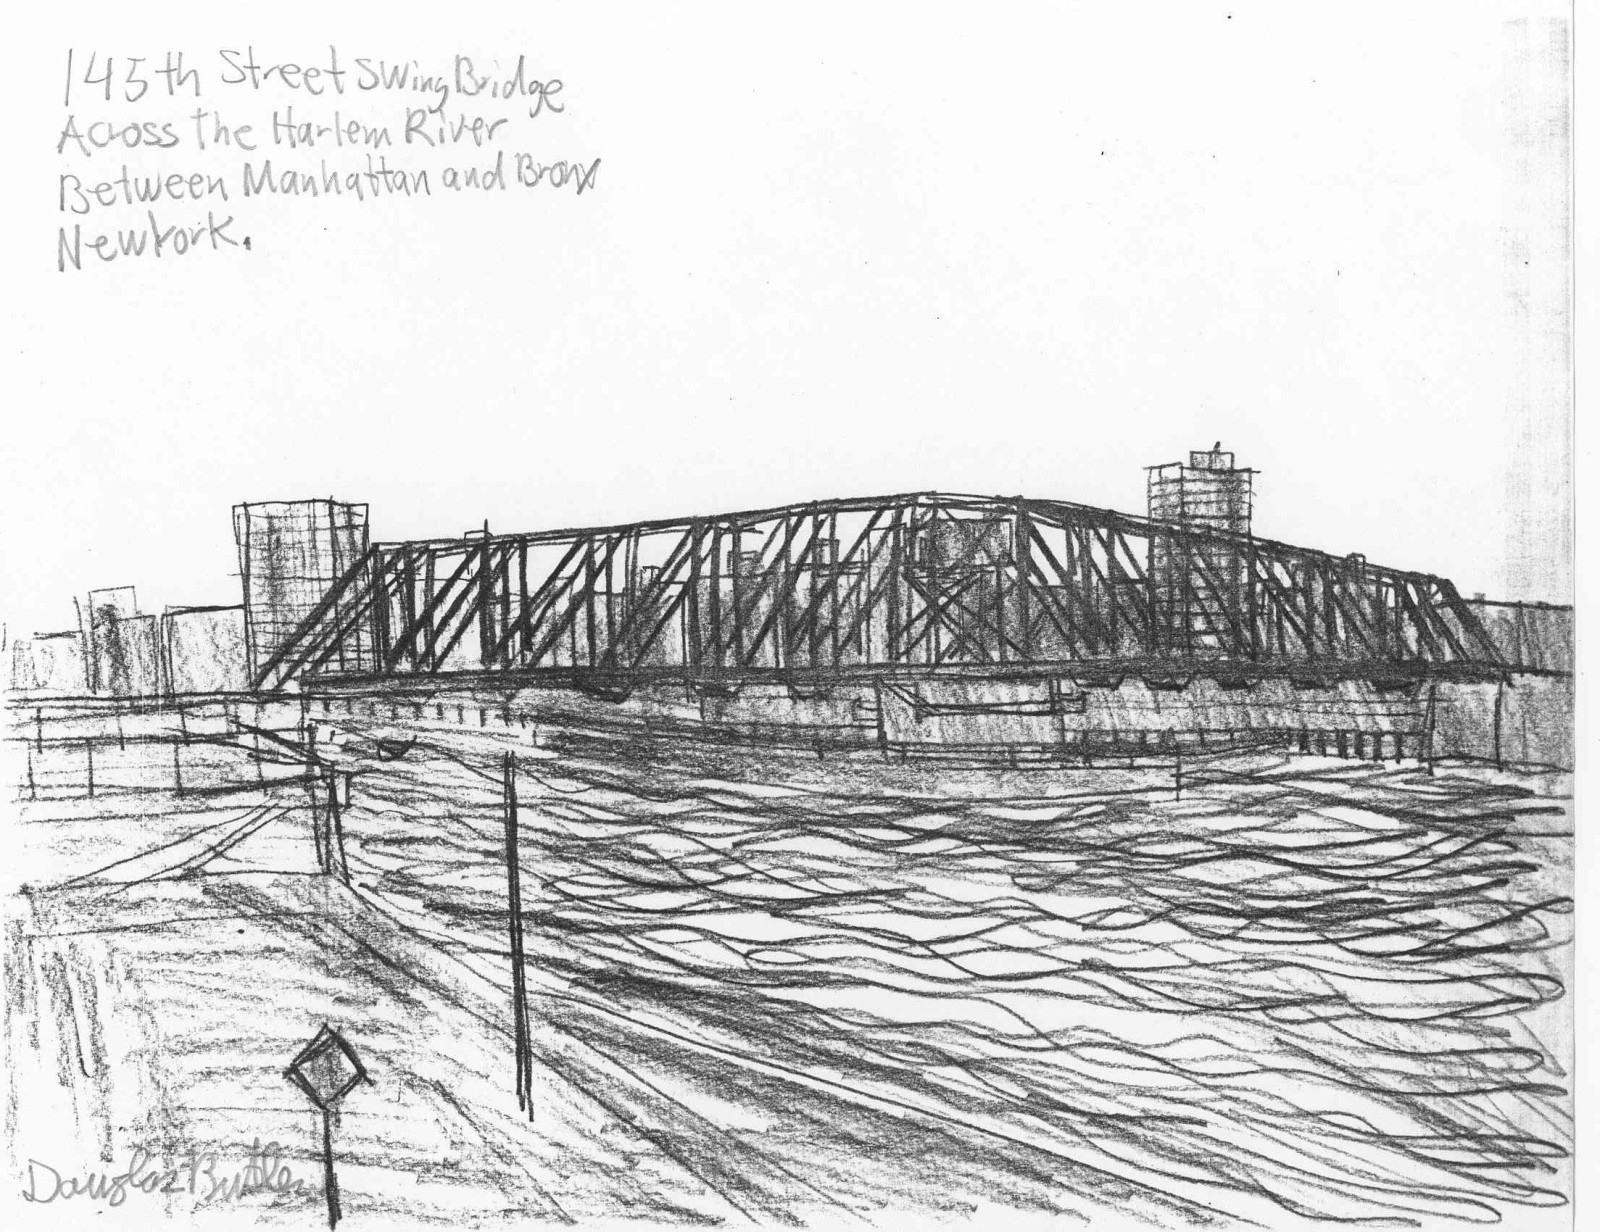 145th street bridge essay The general prologue of canterbury tales essay we are what we eat essay help ernest hemingway research paper jamshedpur service evaluation or research papers harvard dissertation year diborsyo essay writing essay for lifetime goals list wsus sccm comparison essay short essay for students on terrorism statistics writing a personal experience.